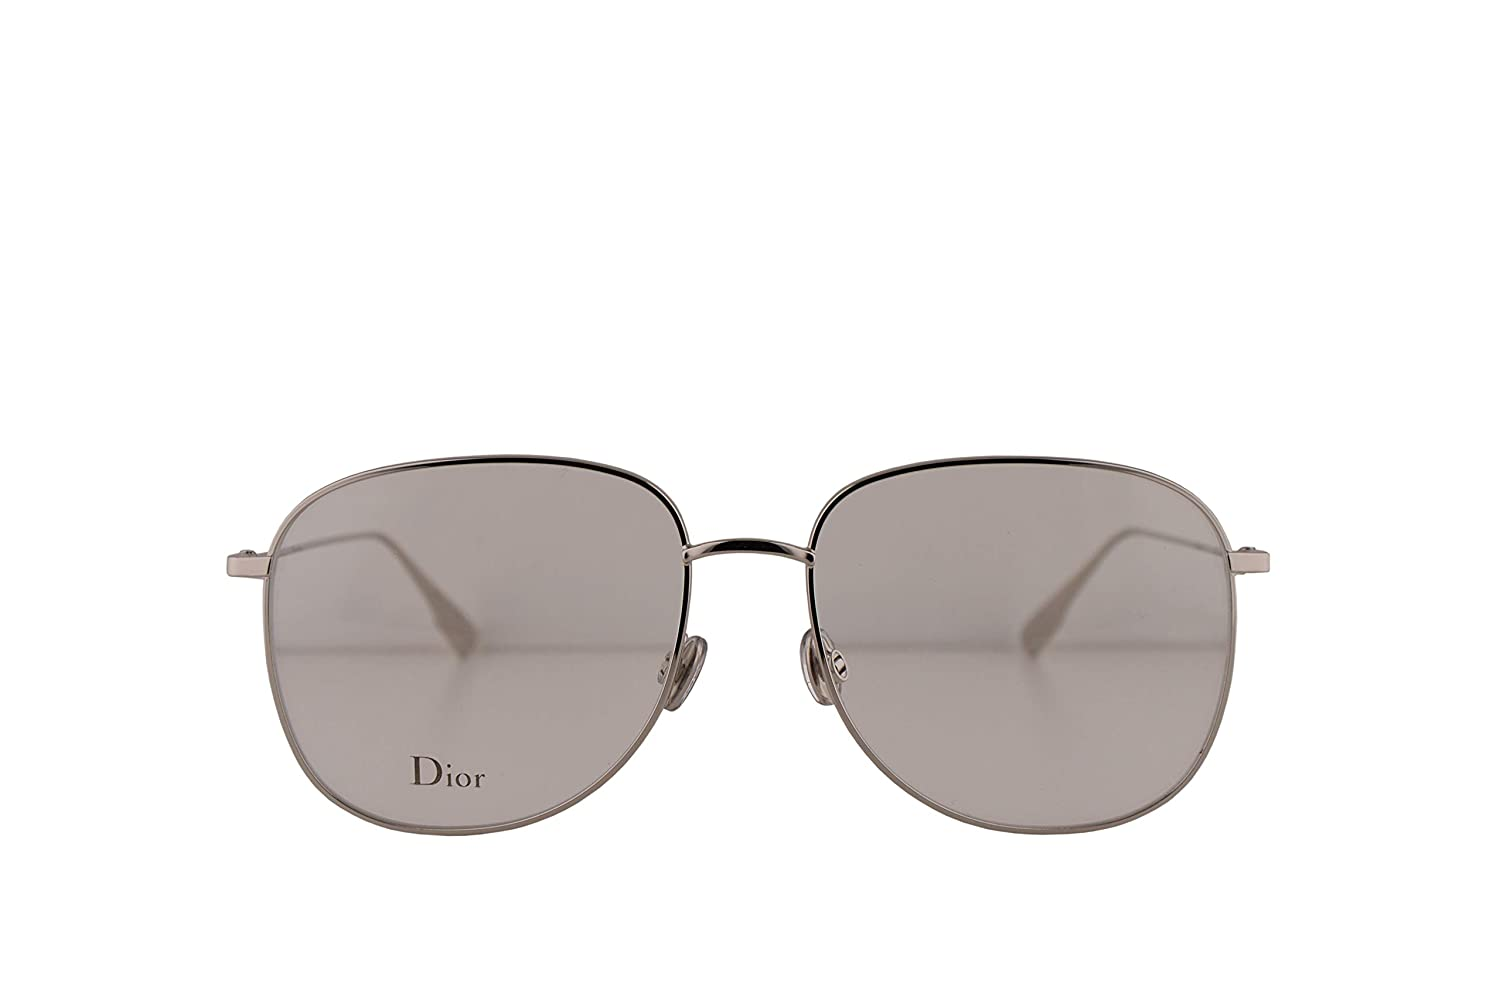 Amazon.com: Christian Dior DiorStellaireO8 - Gafas de ojo ...